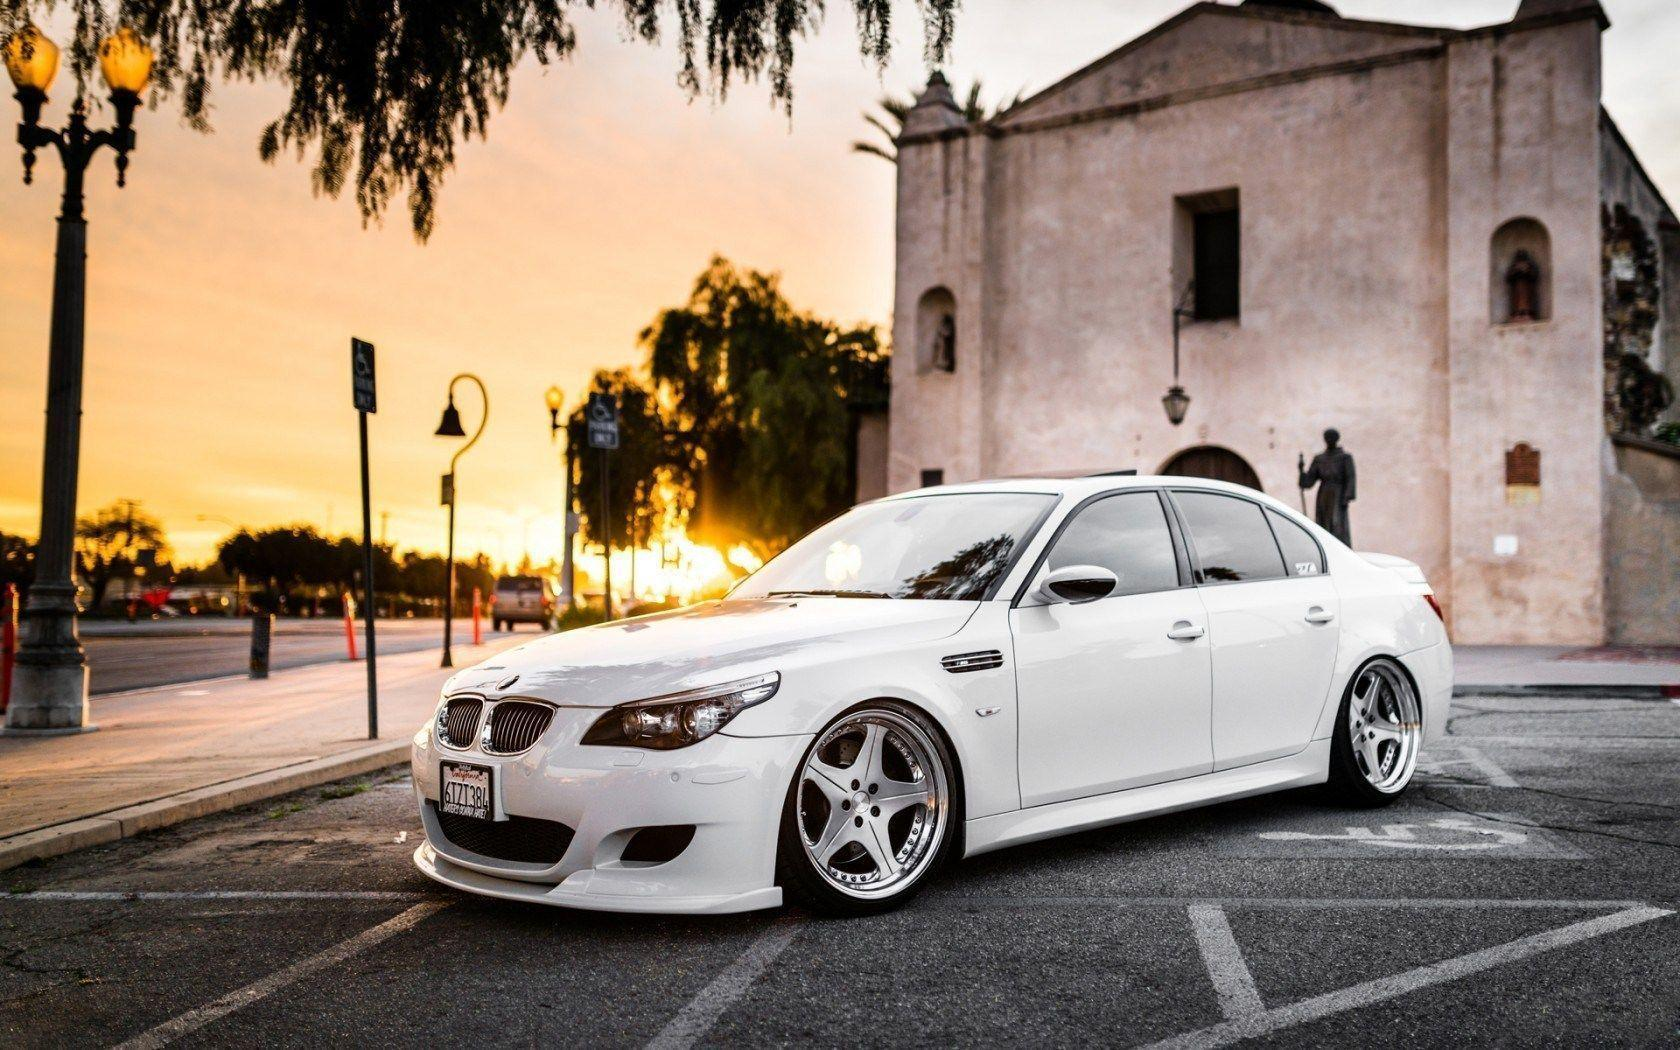 White BMW M5 Parked Outside Church City HD Wallpapers